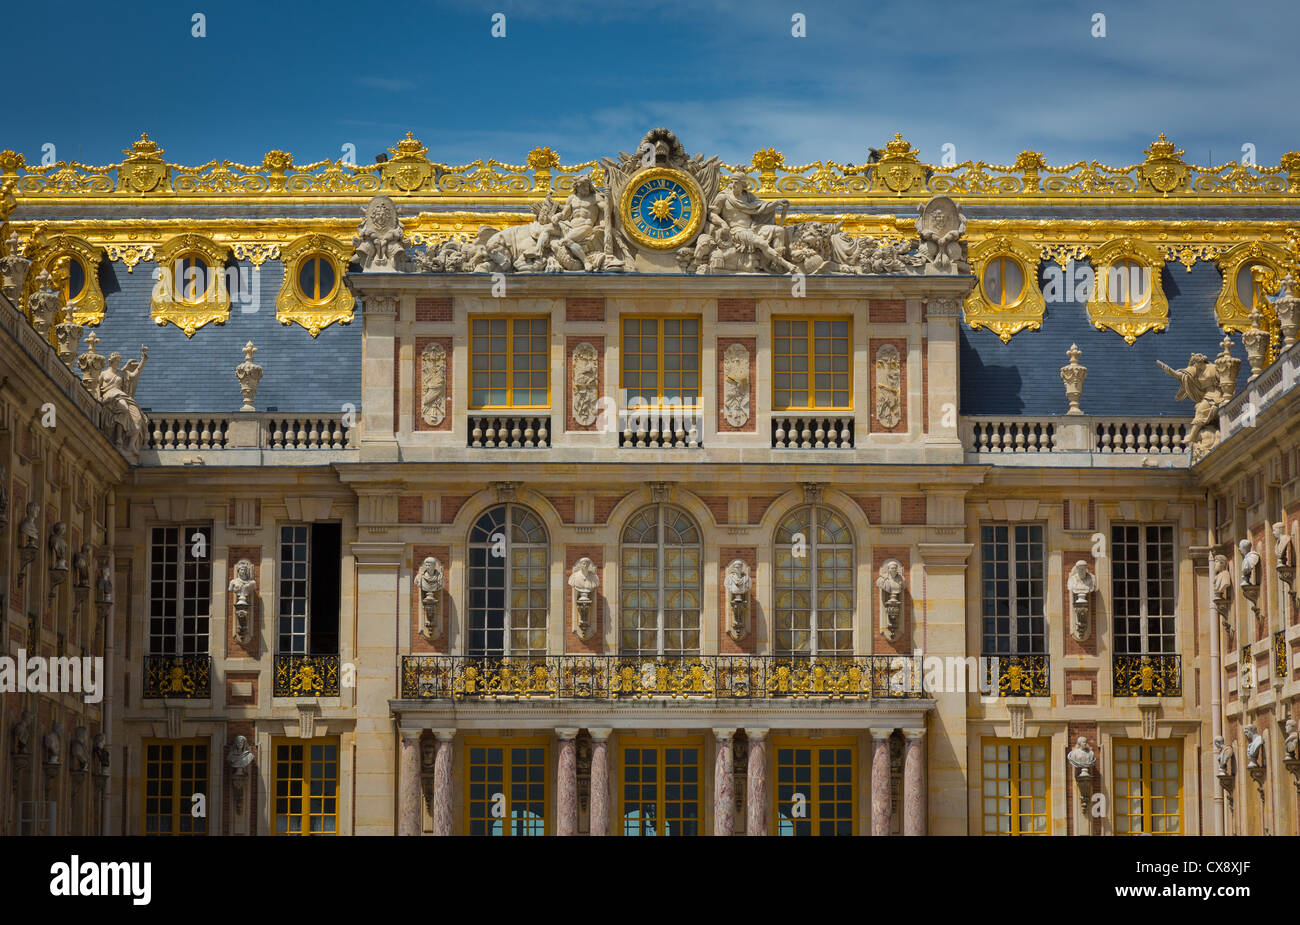 The Palace of Versailles, or simply Versailles, is a royal château in Versailles in the Île-de-France - Stock Image